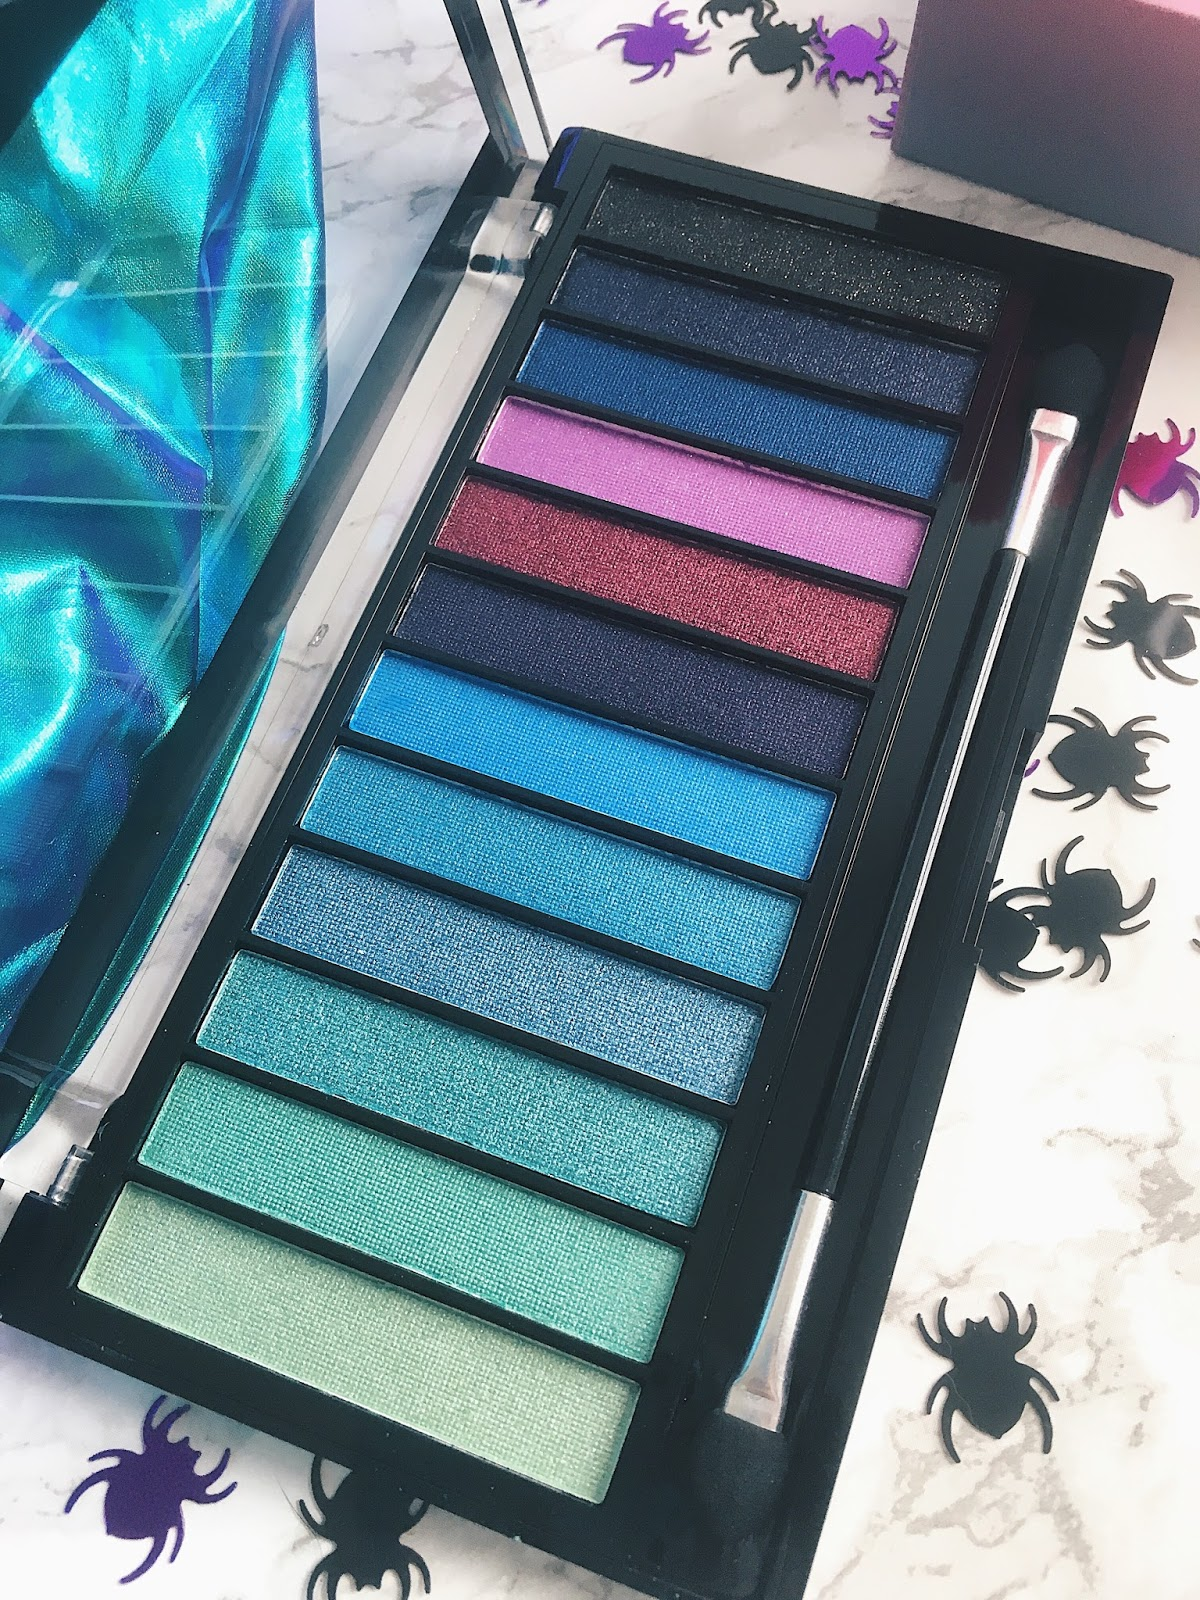 Makeup Revolution Mermaids vs Unicorns Eyeshadow Palette